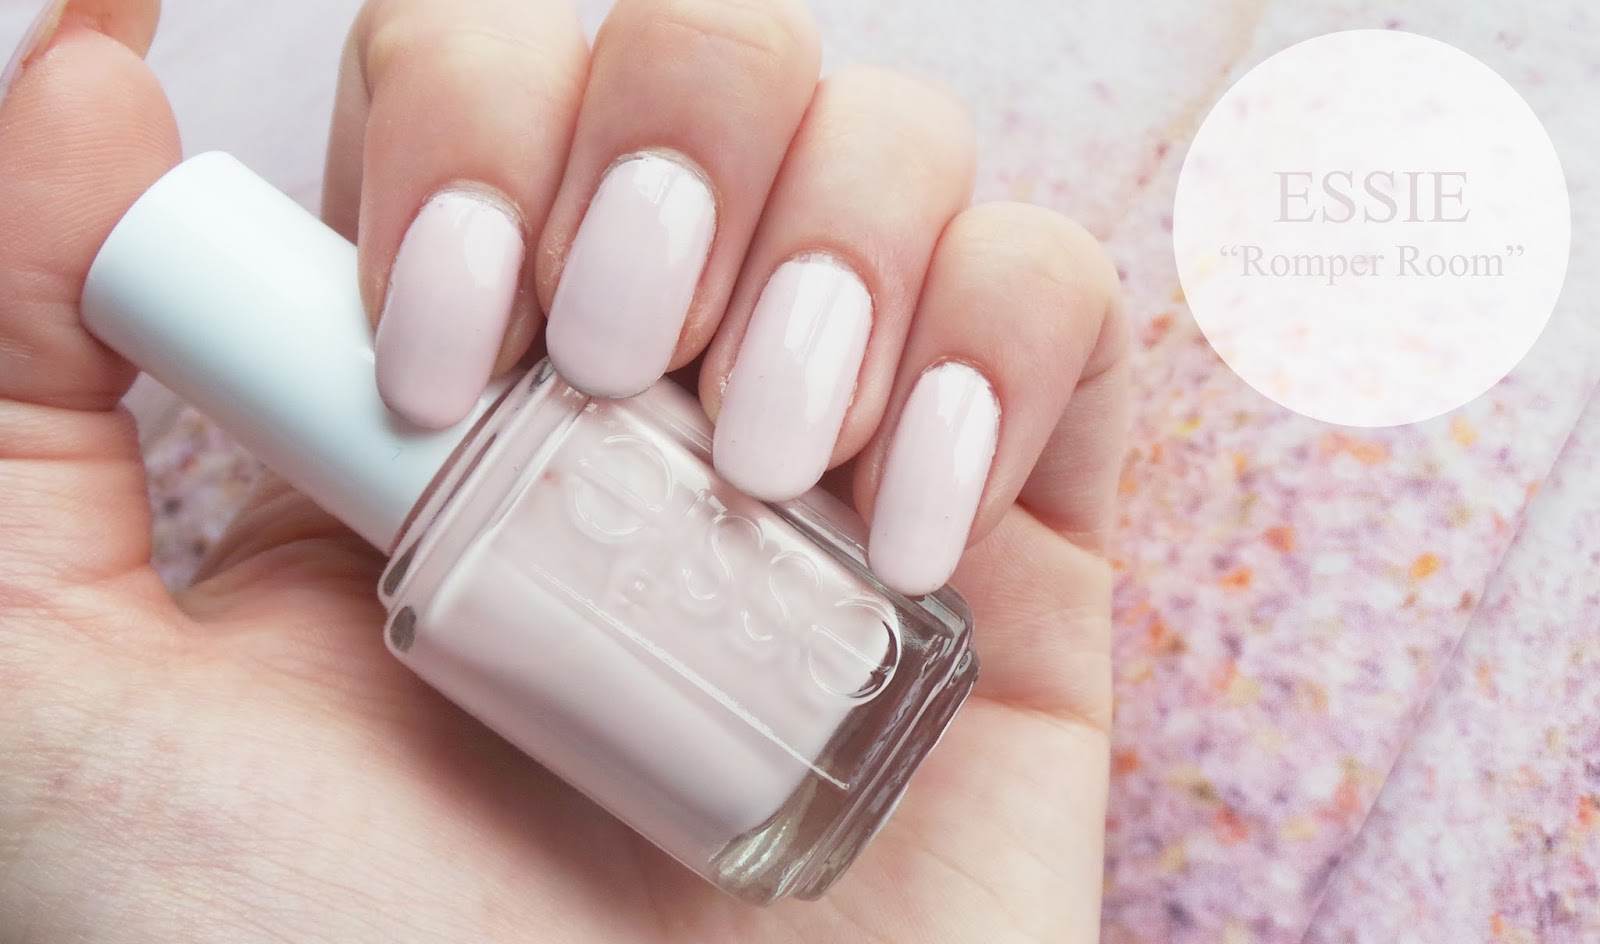 nail blog, nail blogger, nail design, nail art, uk nail blog, uk nail blogger, beauty blog, uk beauty blogger, uk fashion blog, fashion blogger, fashion blog, nail art blog, nail designs, essie, essie romper room review, essie romper room swatch, essie romper room